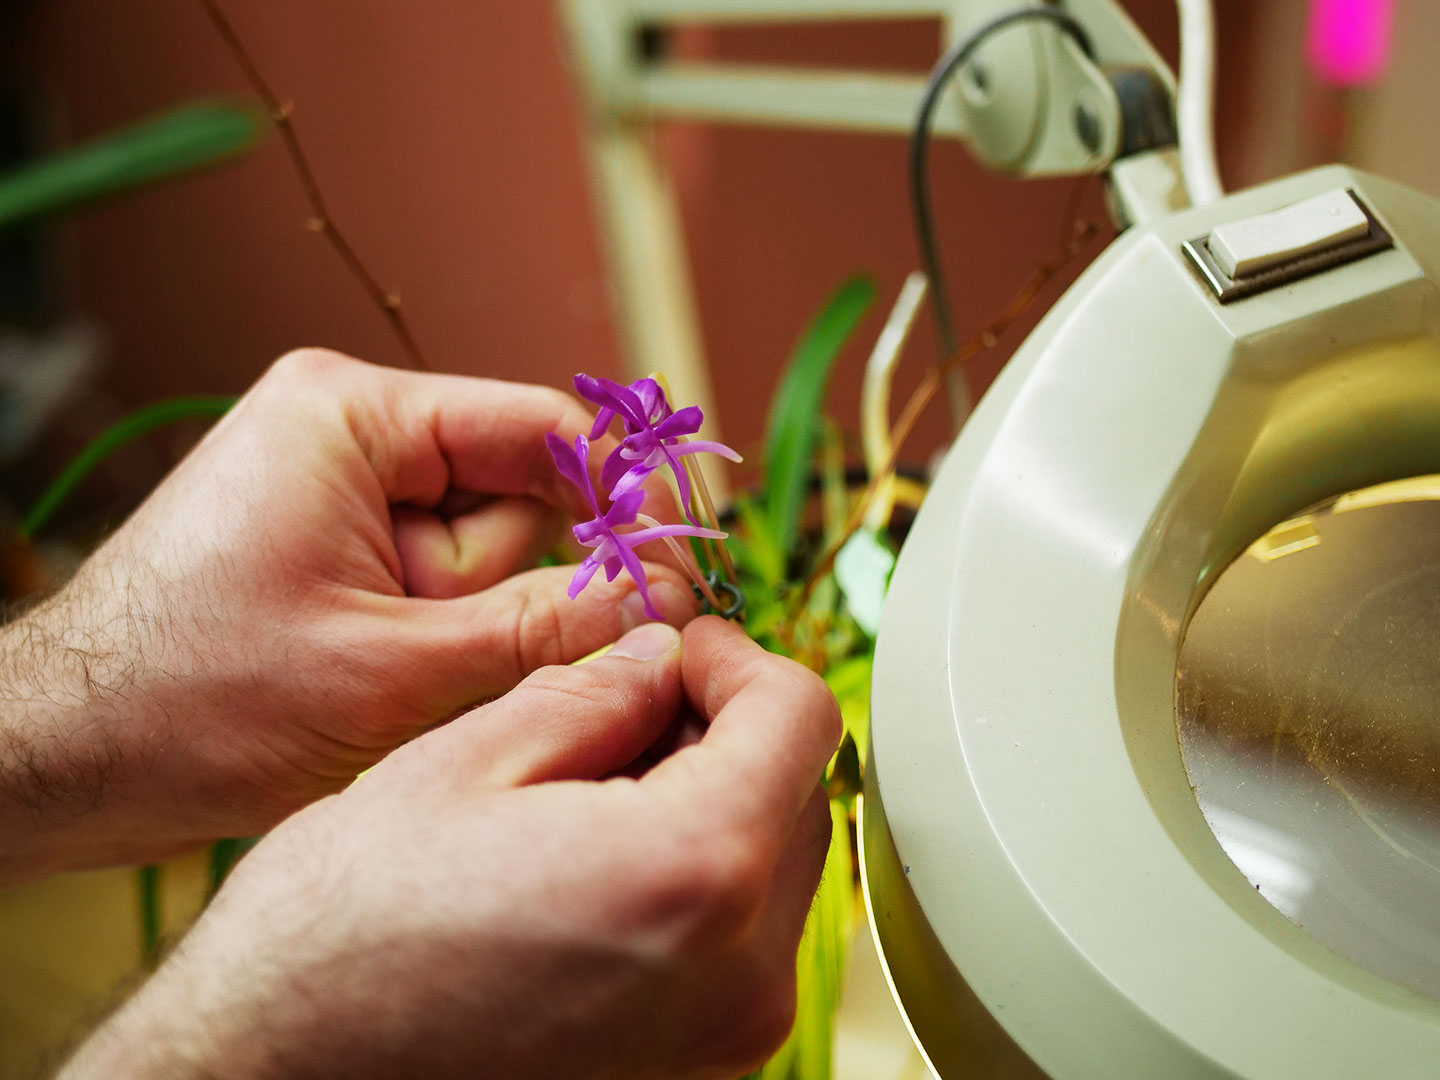 How to Care for Your Orchid - Our knowledgeable team will work with you to find the best orchids to fit your environment and experience level. We strive to be the team you turn to as your go-to resource for expert level advice and award-winning orchids. We encourage you to use these care tips and to reach out to us if you have any questions.